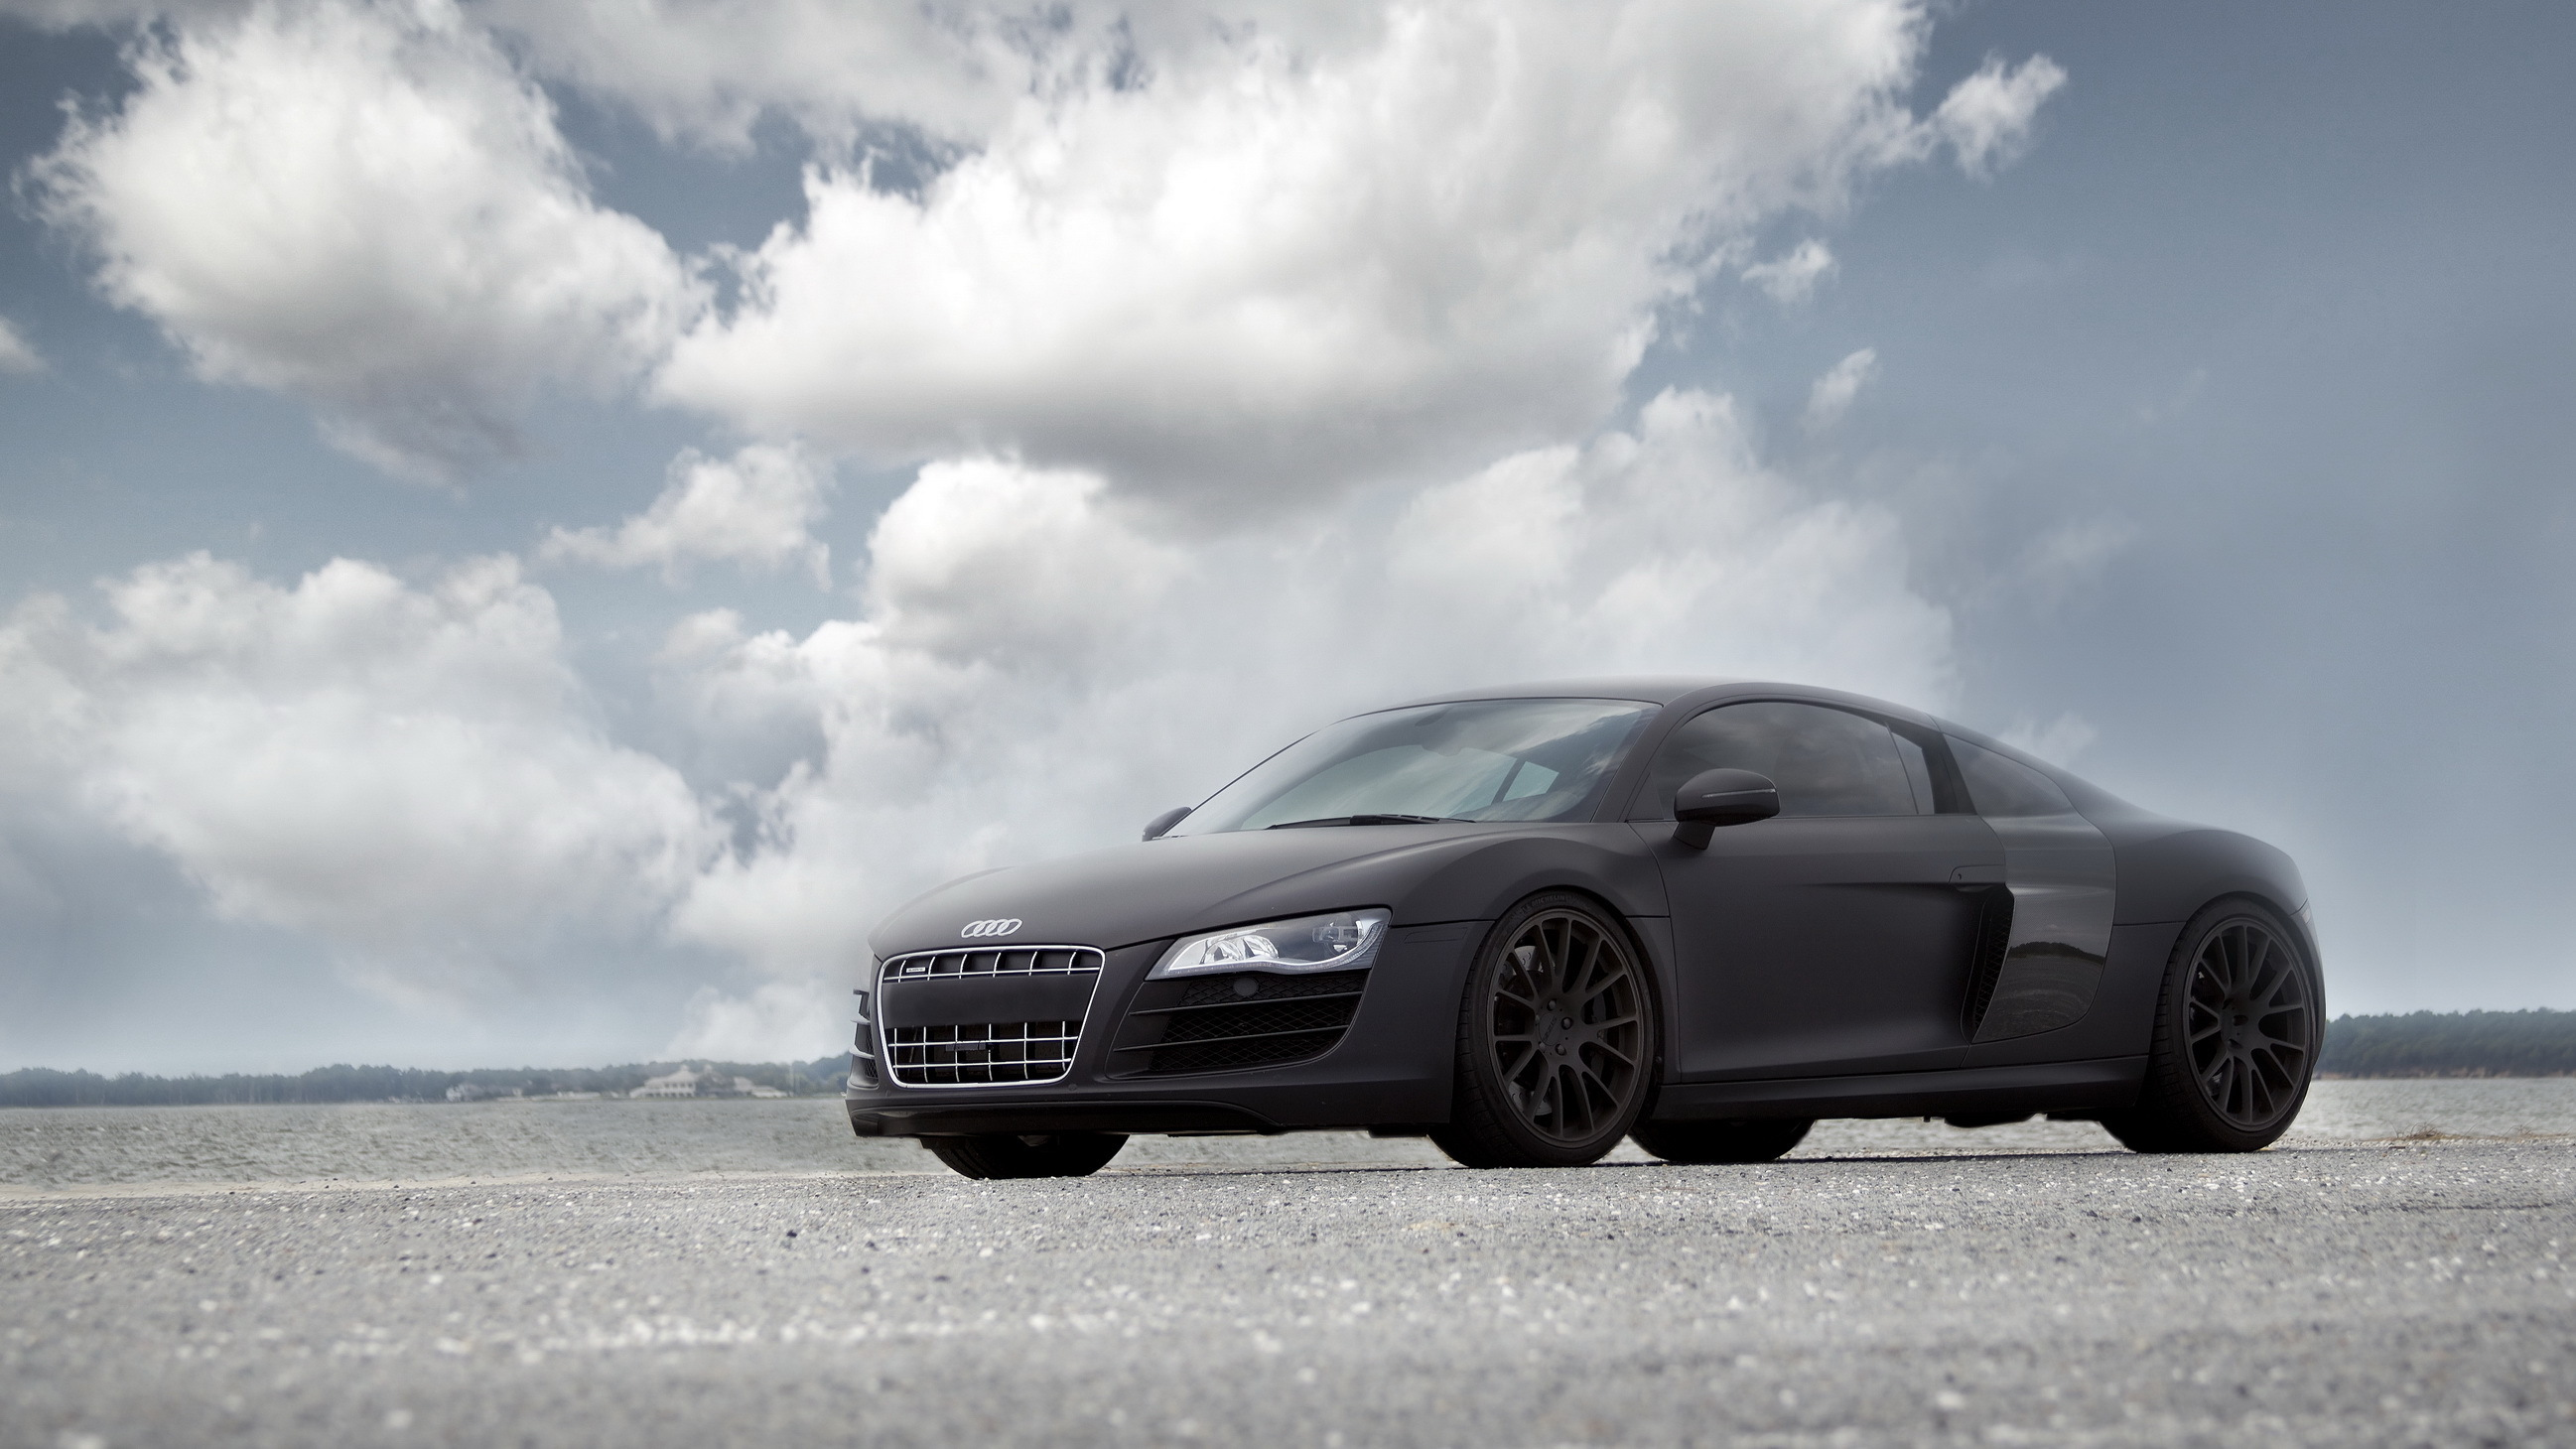 High Definition Photo Of Audi R8 Desktop Wallpaper Of Audi Luxury Cars Imagebank Biz